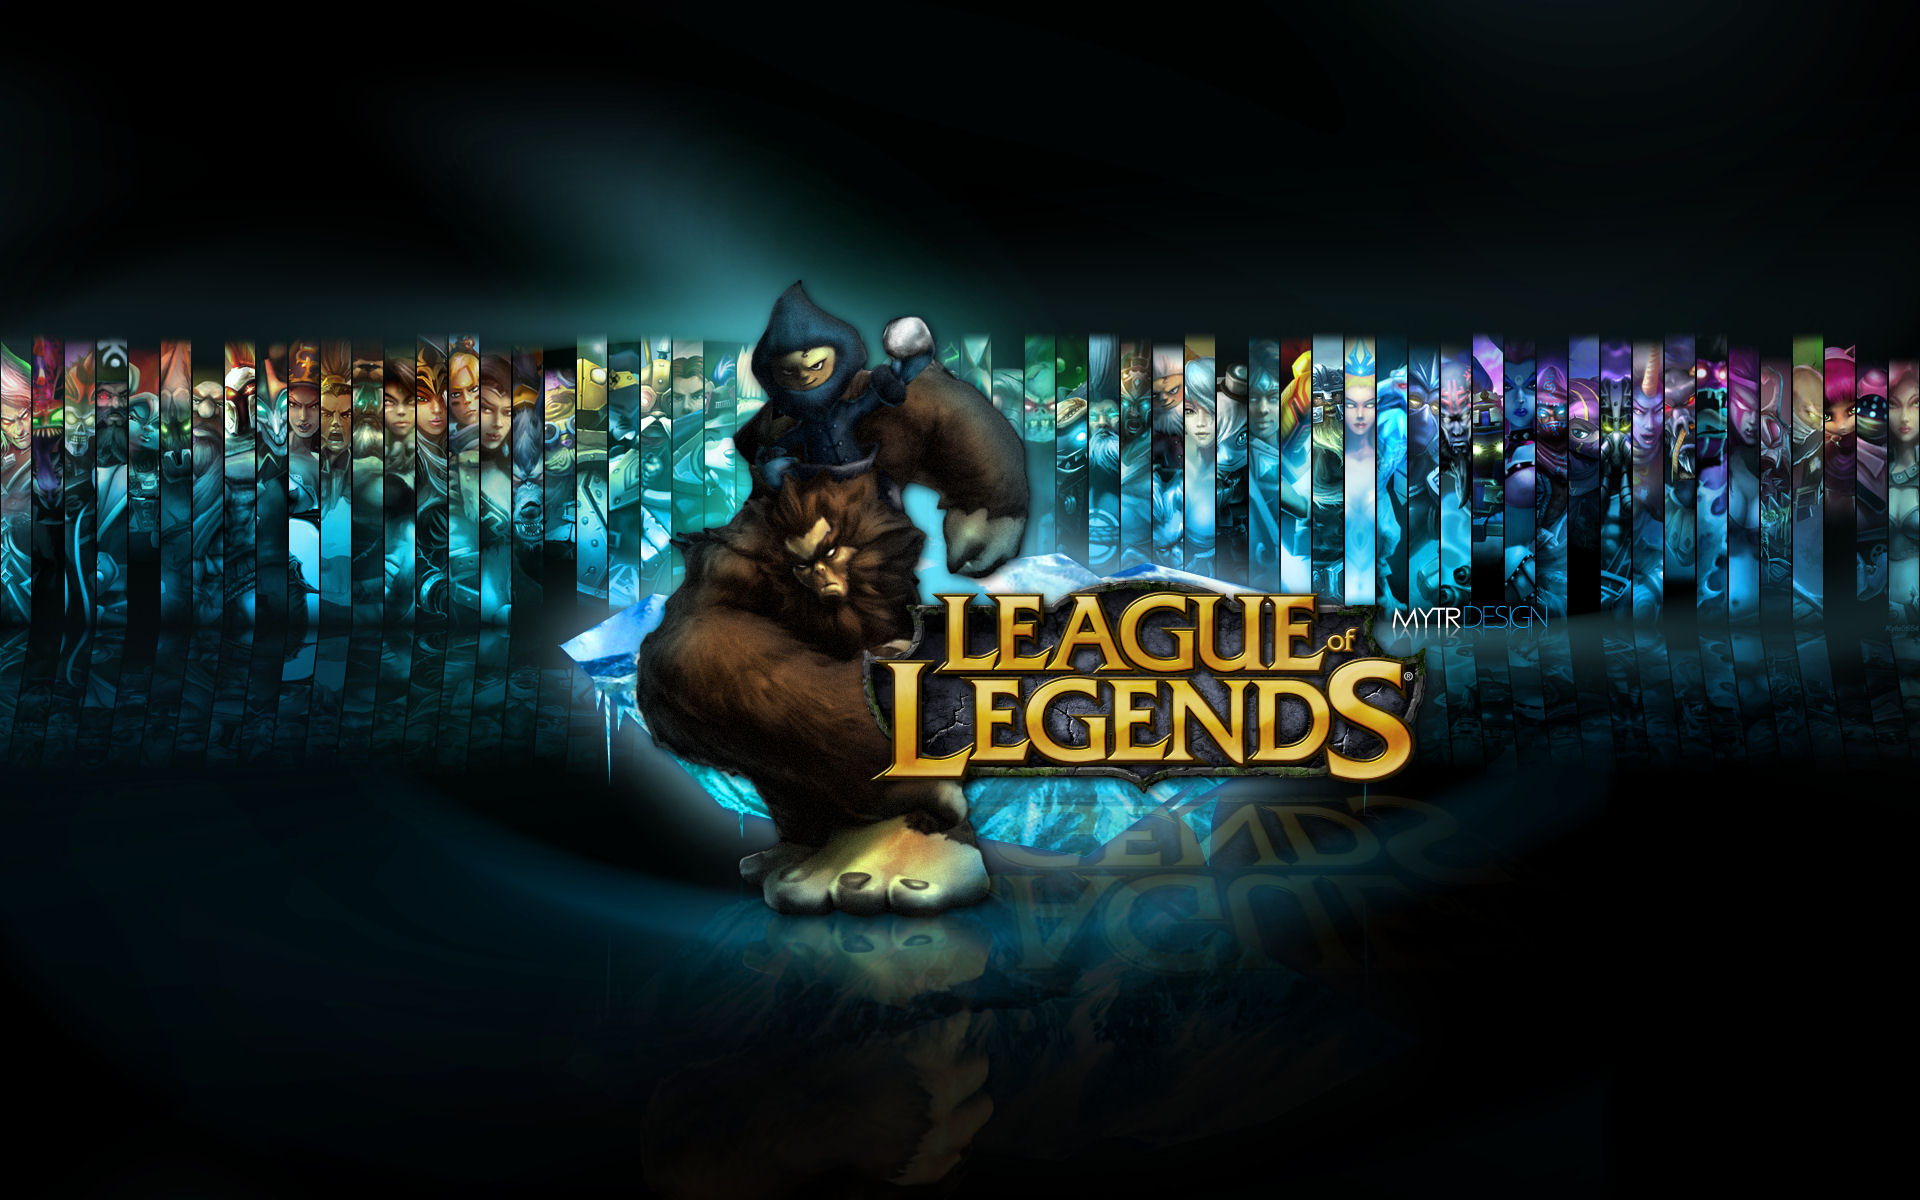 league of legends backgrounds A5